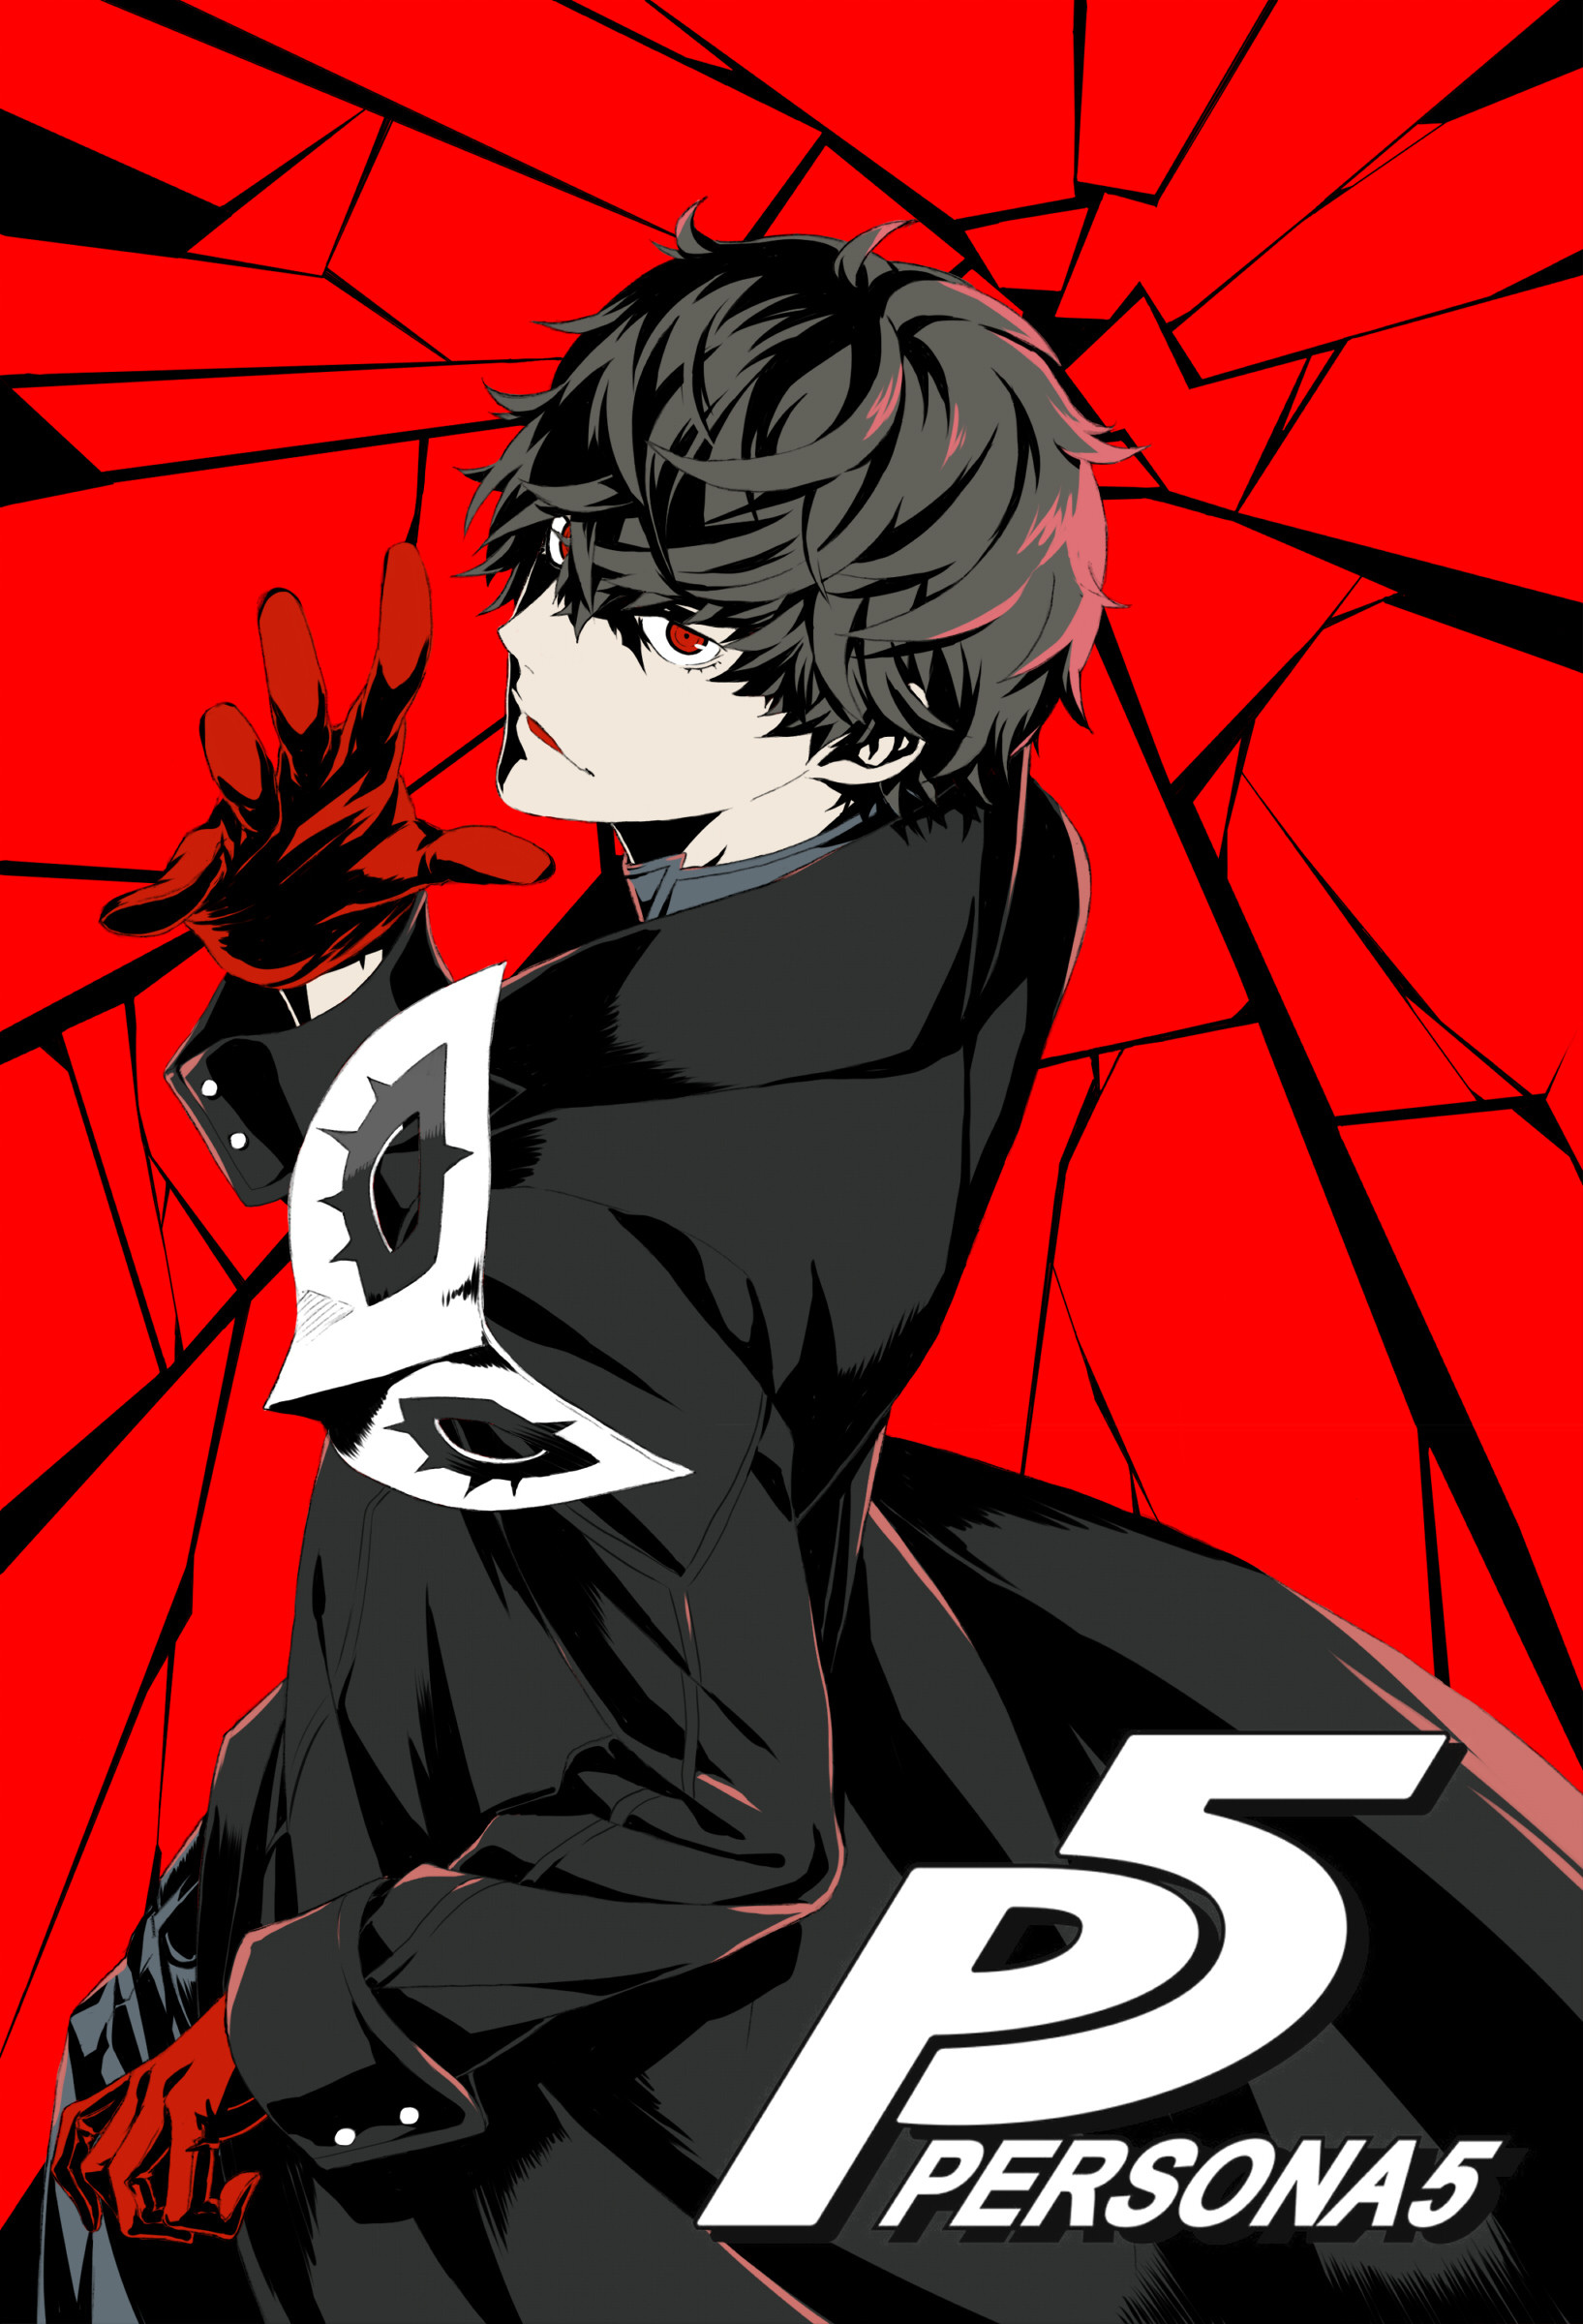 77 Persona 5 Wallpaper Hd